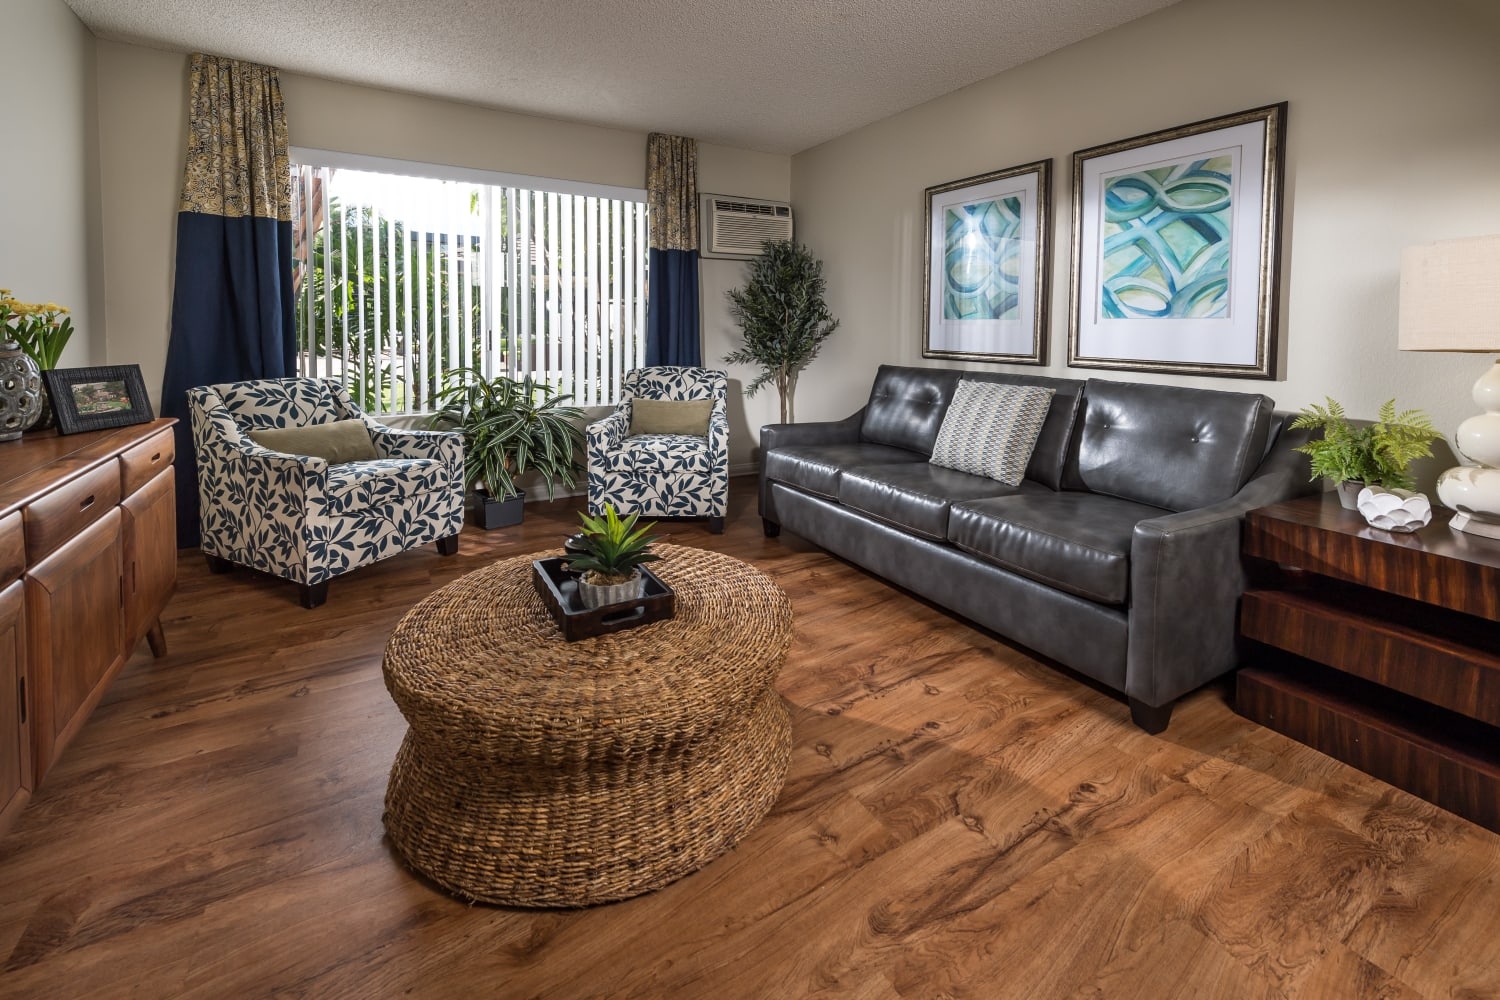 UCE Apartment Homes in Fullerton, California, offers open living room floor plans with hardwood floors